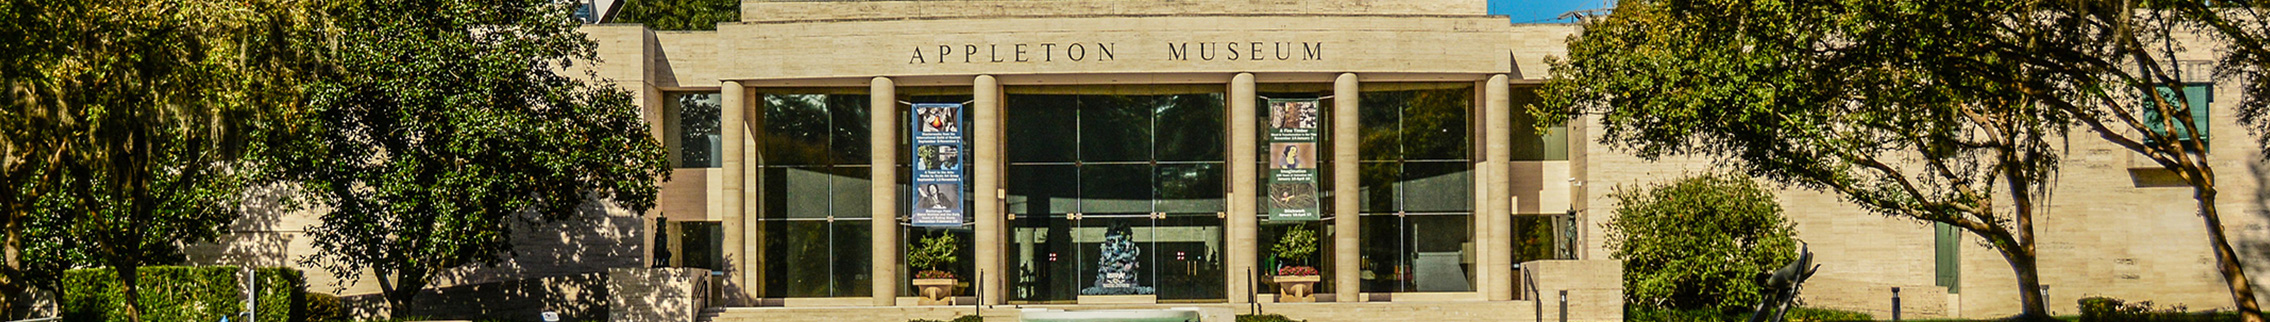 Throughout the year, The Appleton Museum hosts several different exhibitions, events, and shows.